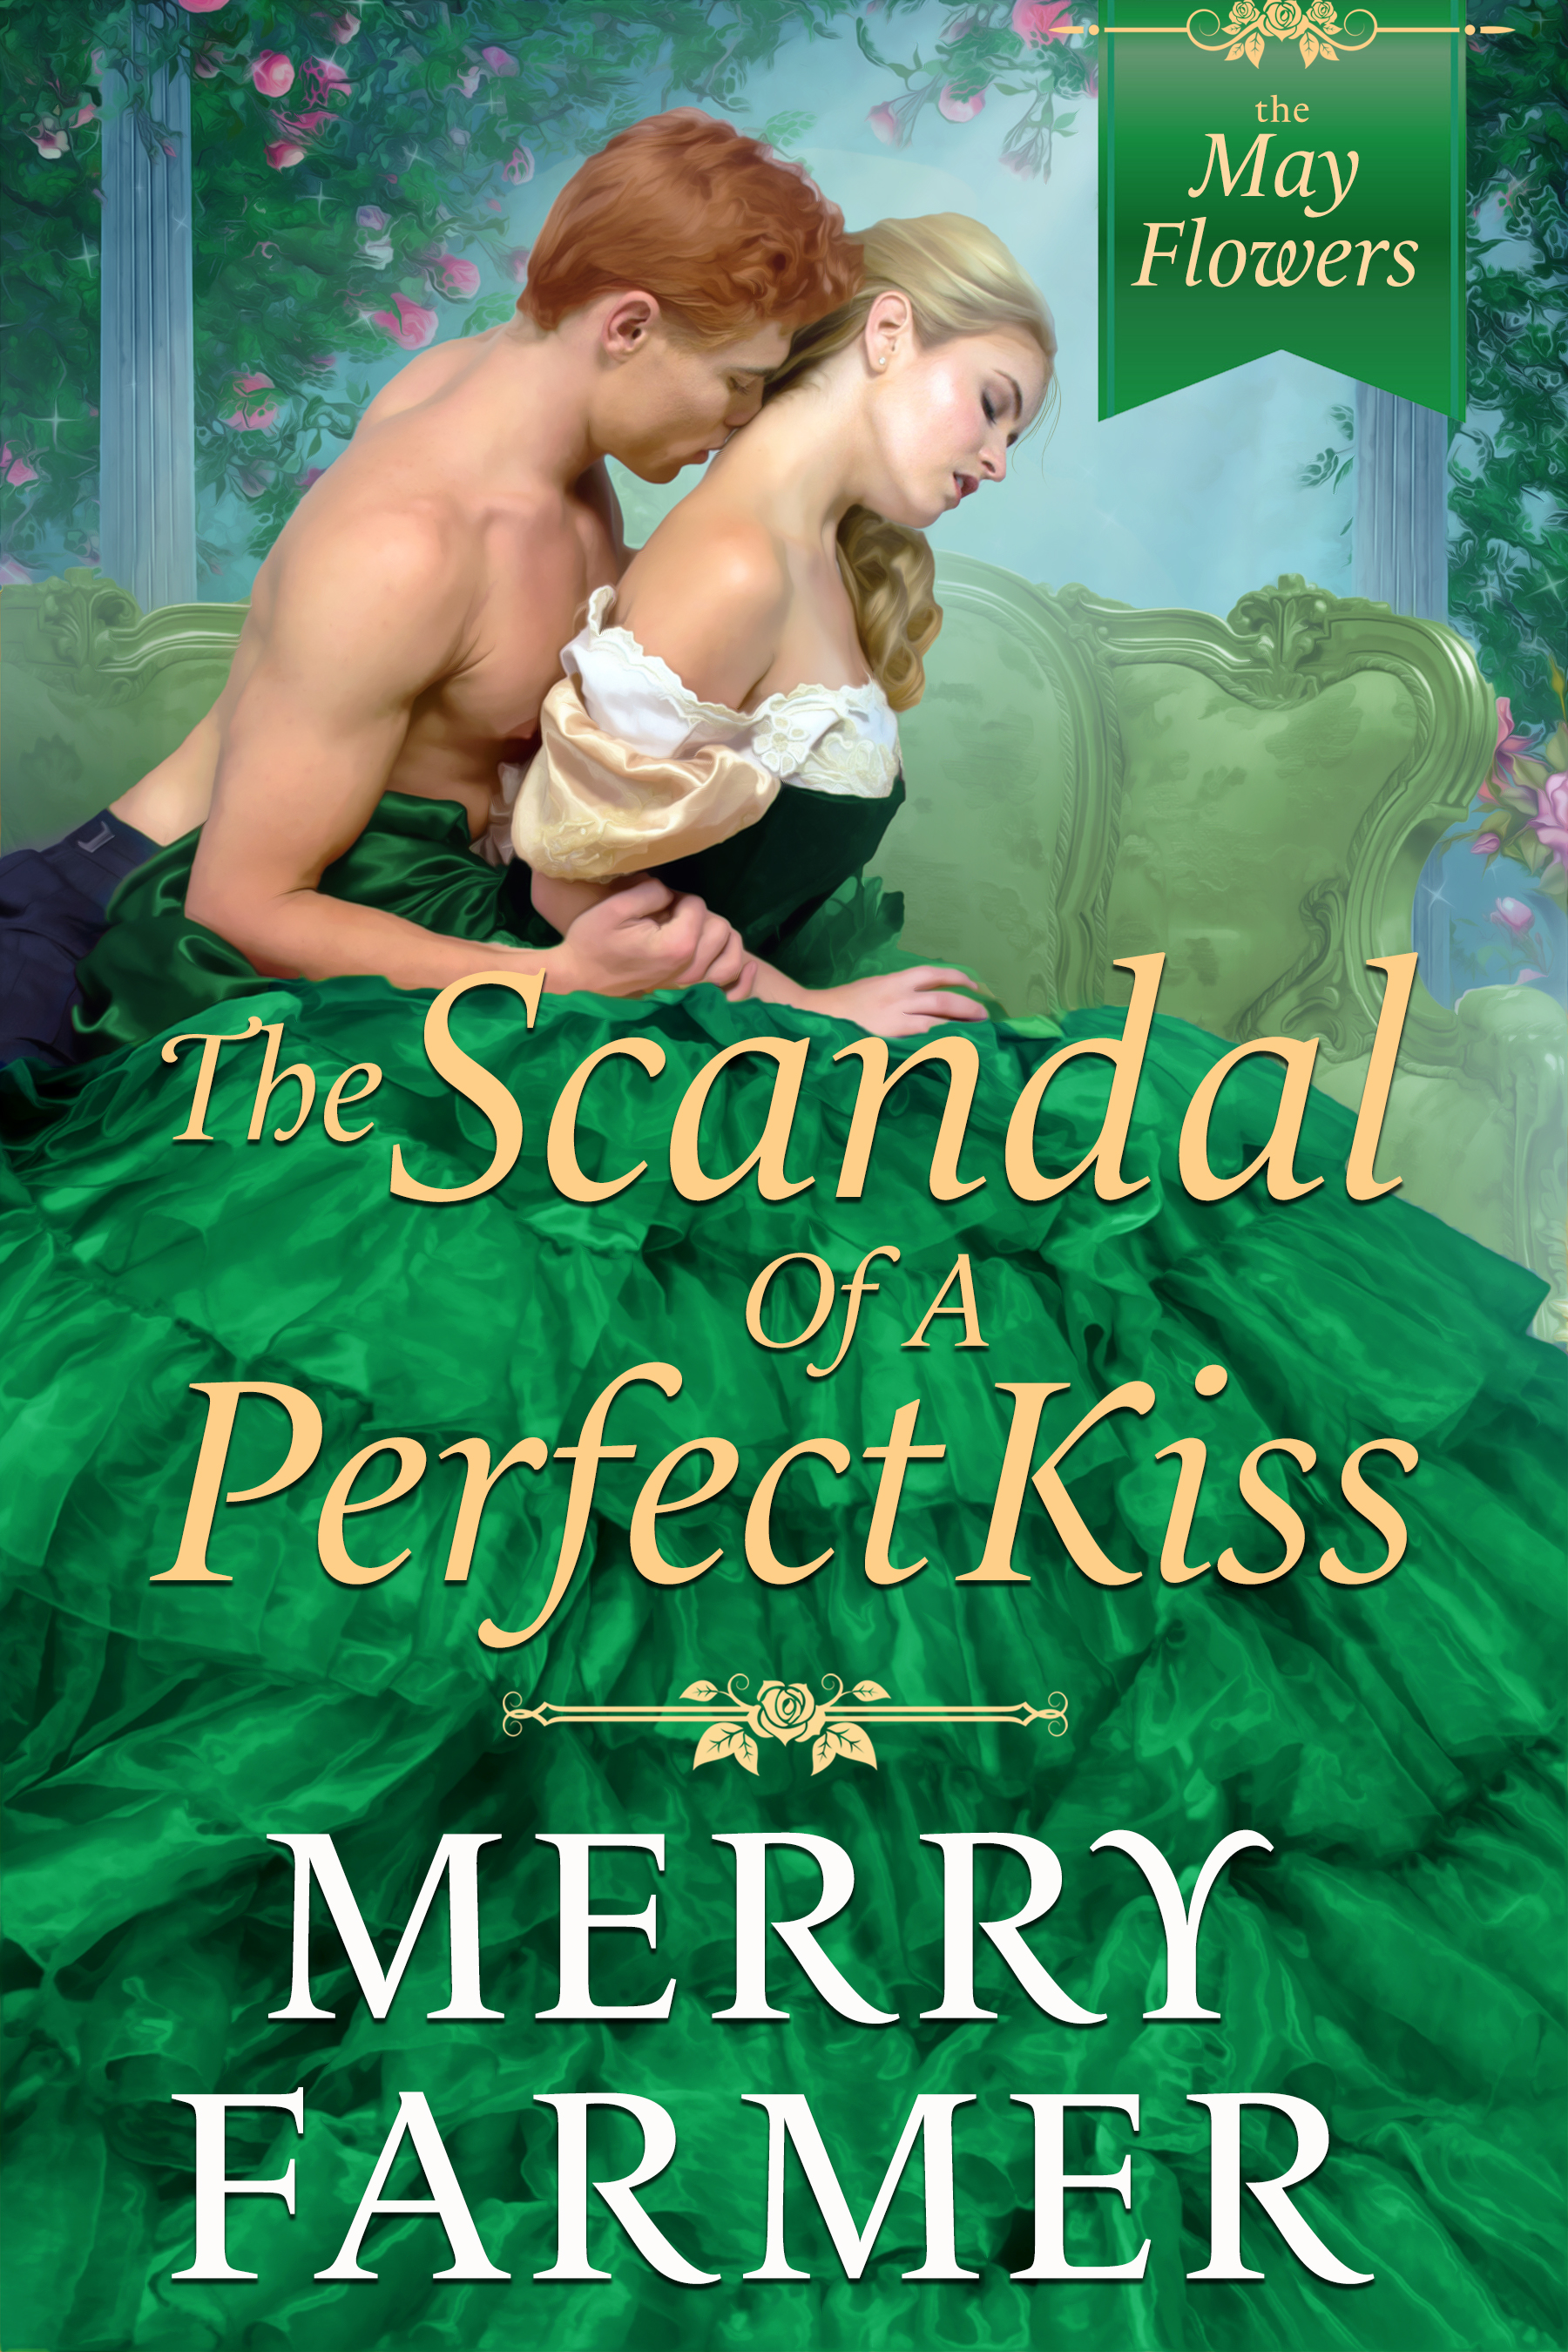 The Scandal of a Perfect Kiss (Book Three) - She doesn't have time to fall in love….Lady Henrietta Hopewell, the widowed Marchioness of Tavistock, is one of the most powerful women in London. As the leader of the most prestigious ladies' club in town, The May Flowers, she holds the course of British politics in the palm of her hand, all while raising her beloved son, Ricky, the current Marquess of Tavistock. Offers of marriage fly her way at every turn, but Henrietta's heart belongs to only one man.He doesn't have the heart for romance….After a vicious attack just over a year before, Lord Fergus O'Shea is struggling to become half the man he once was. Confined to a wheelchair, dependent on his friends for a home in London, he can think of only one thing—bringing Lord Charles Denbigh, the man behind his attack, to justice. But even as Fergus closes in on Denbigh, every fiber of his being longs for the one thing he knows he can never have, Henrietta.Henrietta is unwilling to be held at arm's length, though, and sets out to prove to Fergus that he is more than man enough to satisfy her on every level. But when the scandal of their intensifying relationship puts Henrietta in danger of losing her son, she must choose between the two people who share her heart. And when Lord Denbigh turns out to be the wedge keeping Fergus and Henrietta apart, Fergus must summon up the strength he thinks he's lost and overcome his physical disabilities to show Henrietta, Denbigh, and the world that true strength comes from the heart.PLEASE BE ADVISED: Steam level – very spicy!